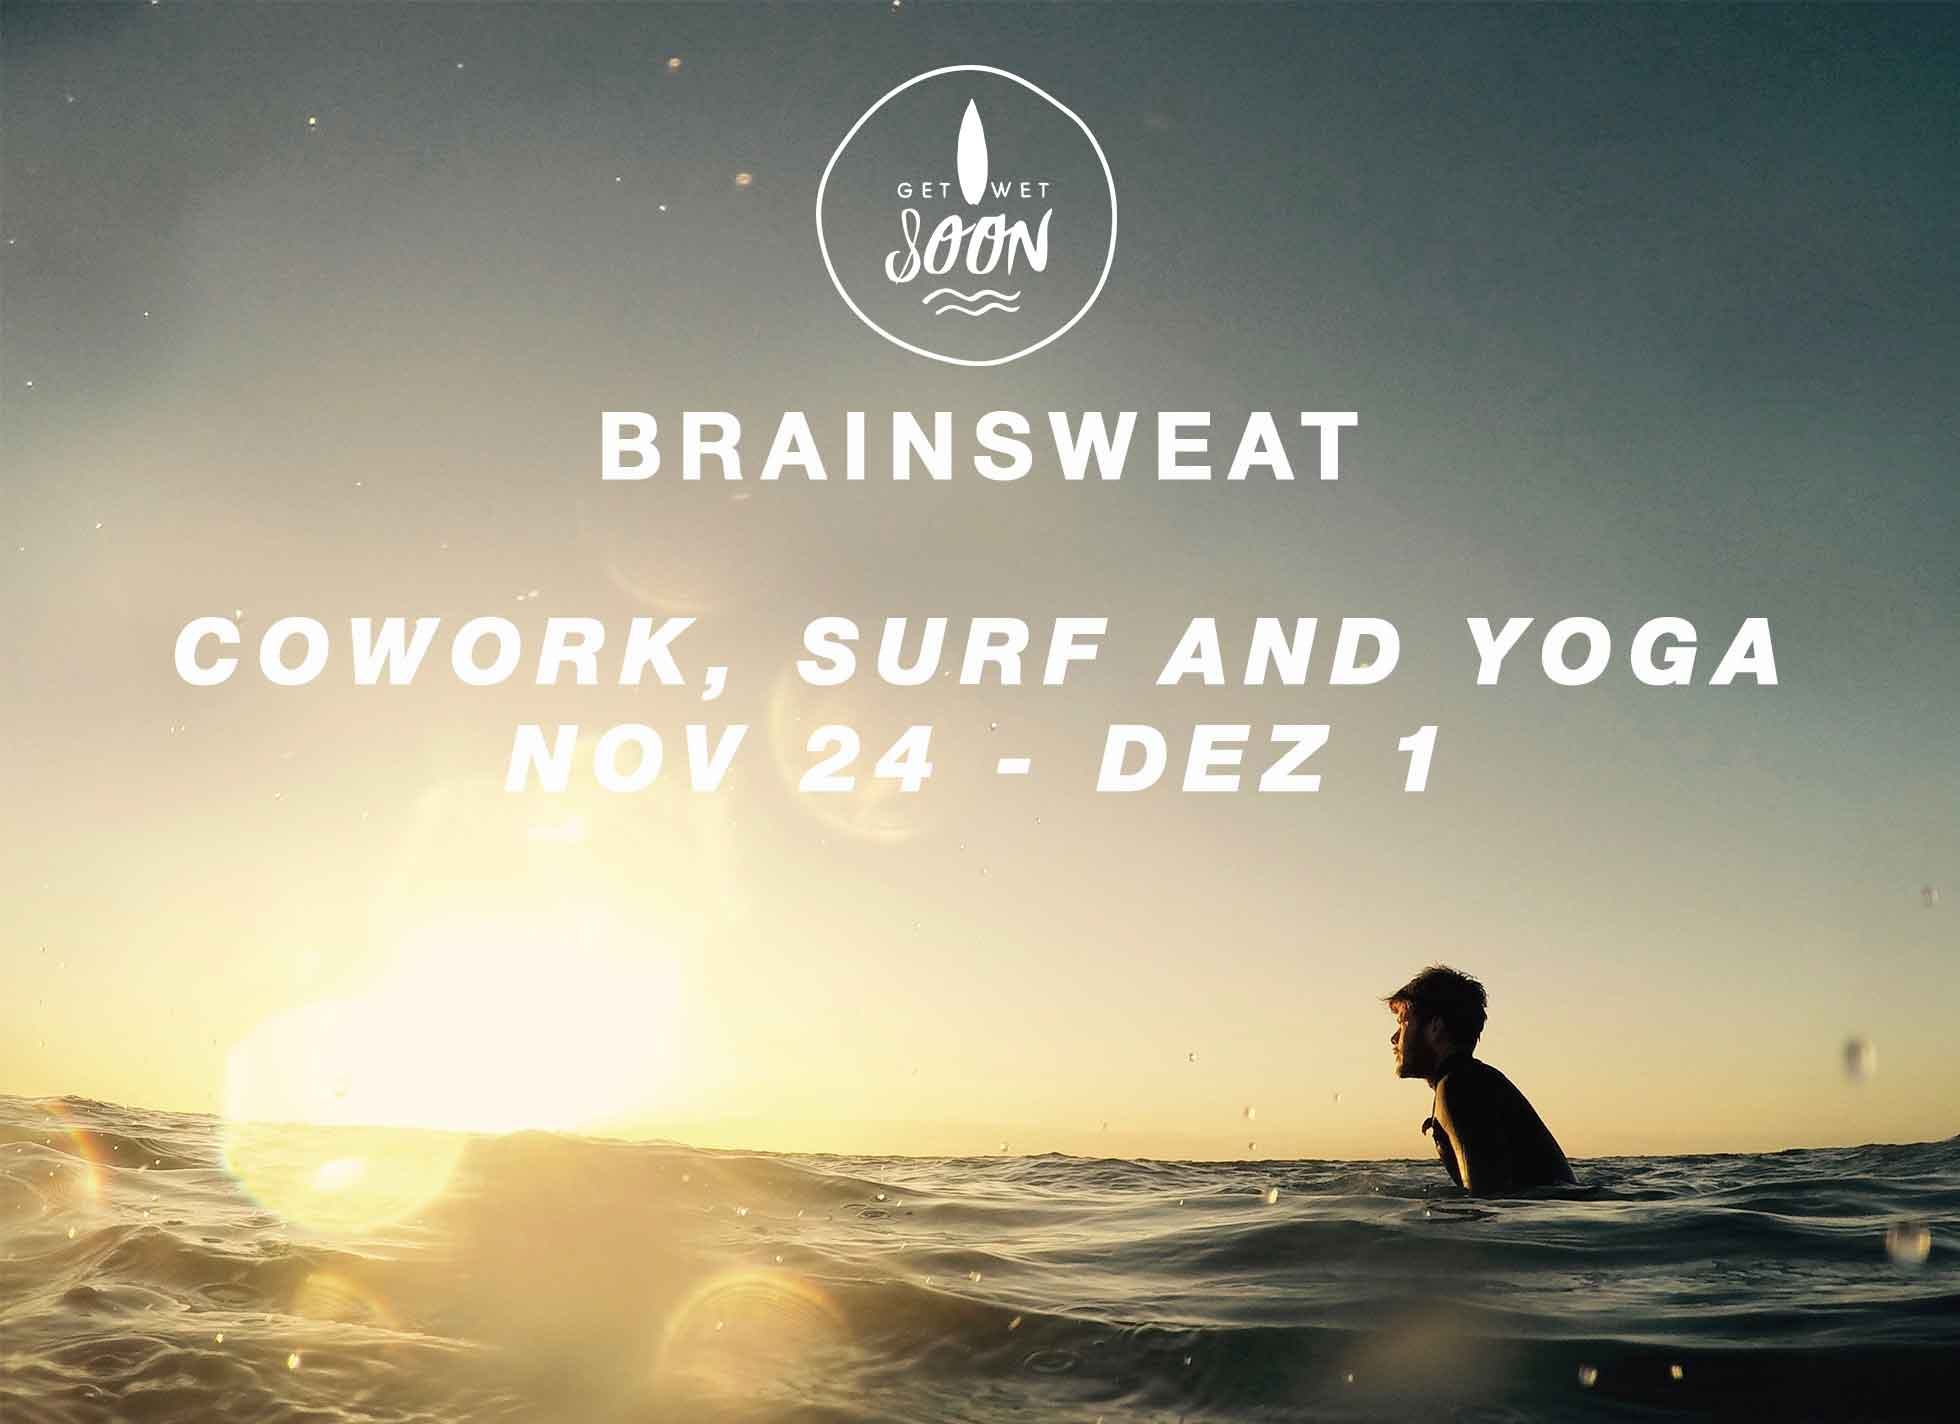 surf cowork brainsweat